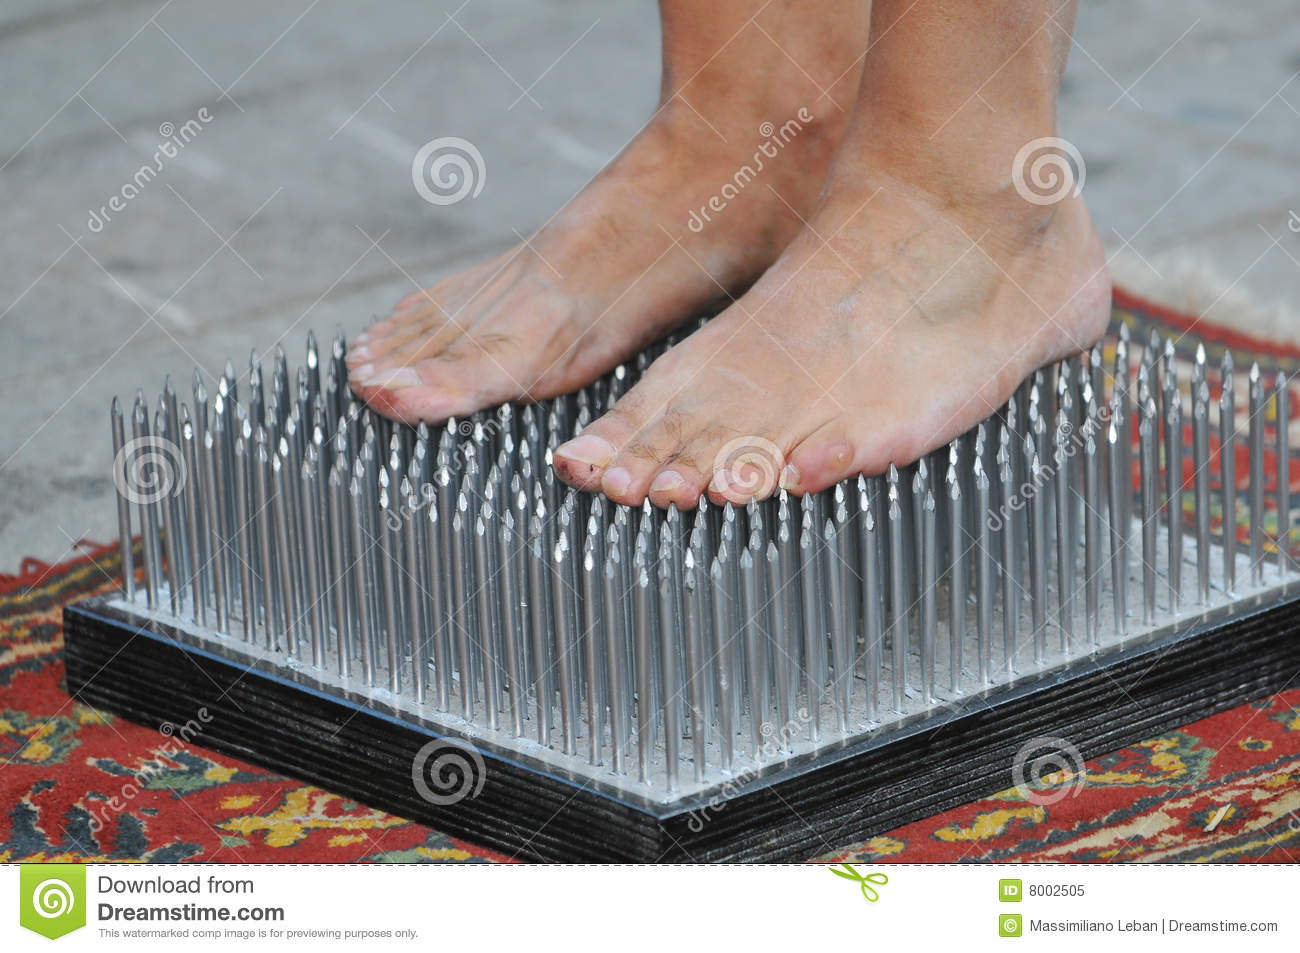 https://thumbs.dreamstime.com/z/bed-nails-8002505.jpg